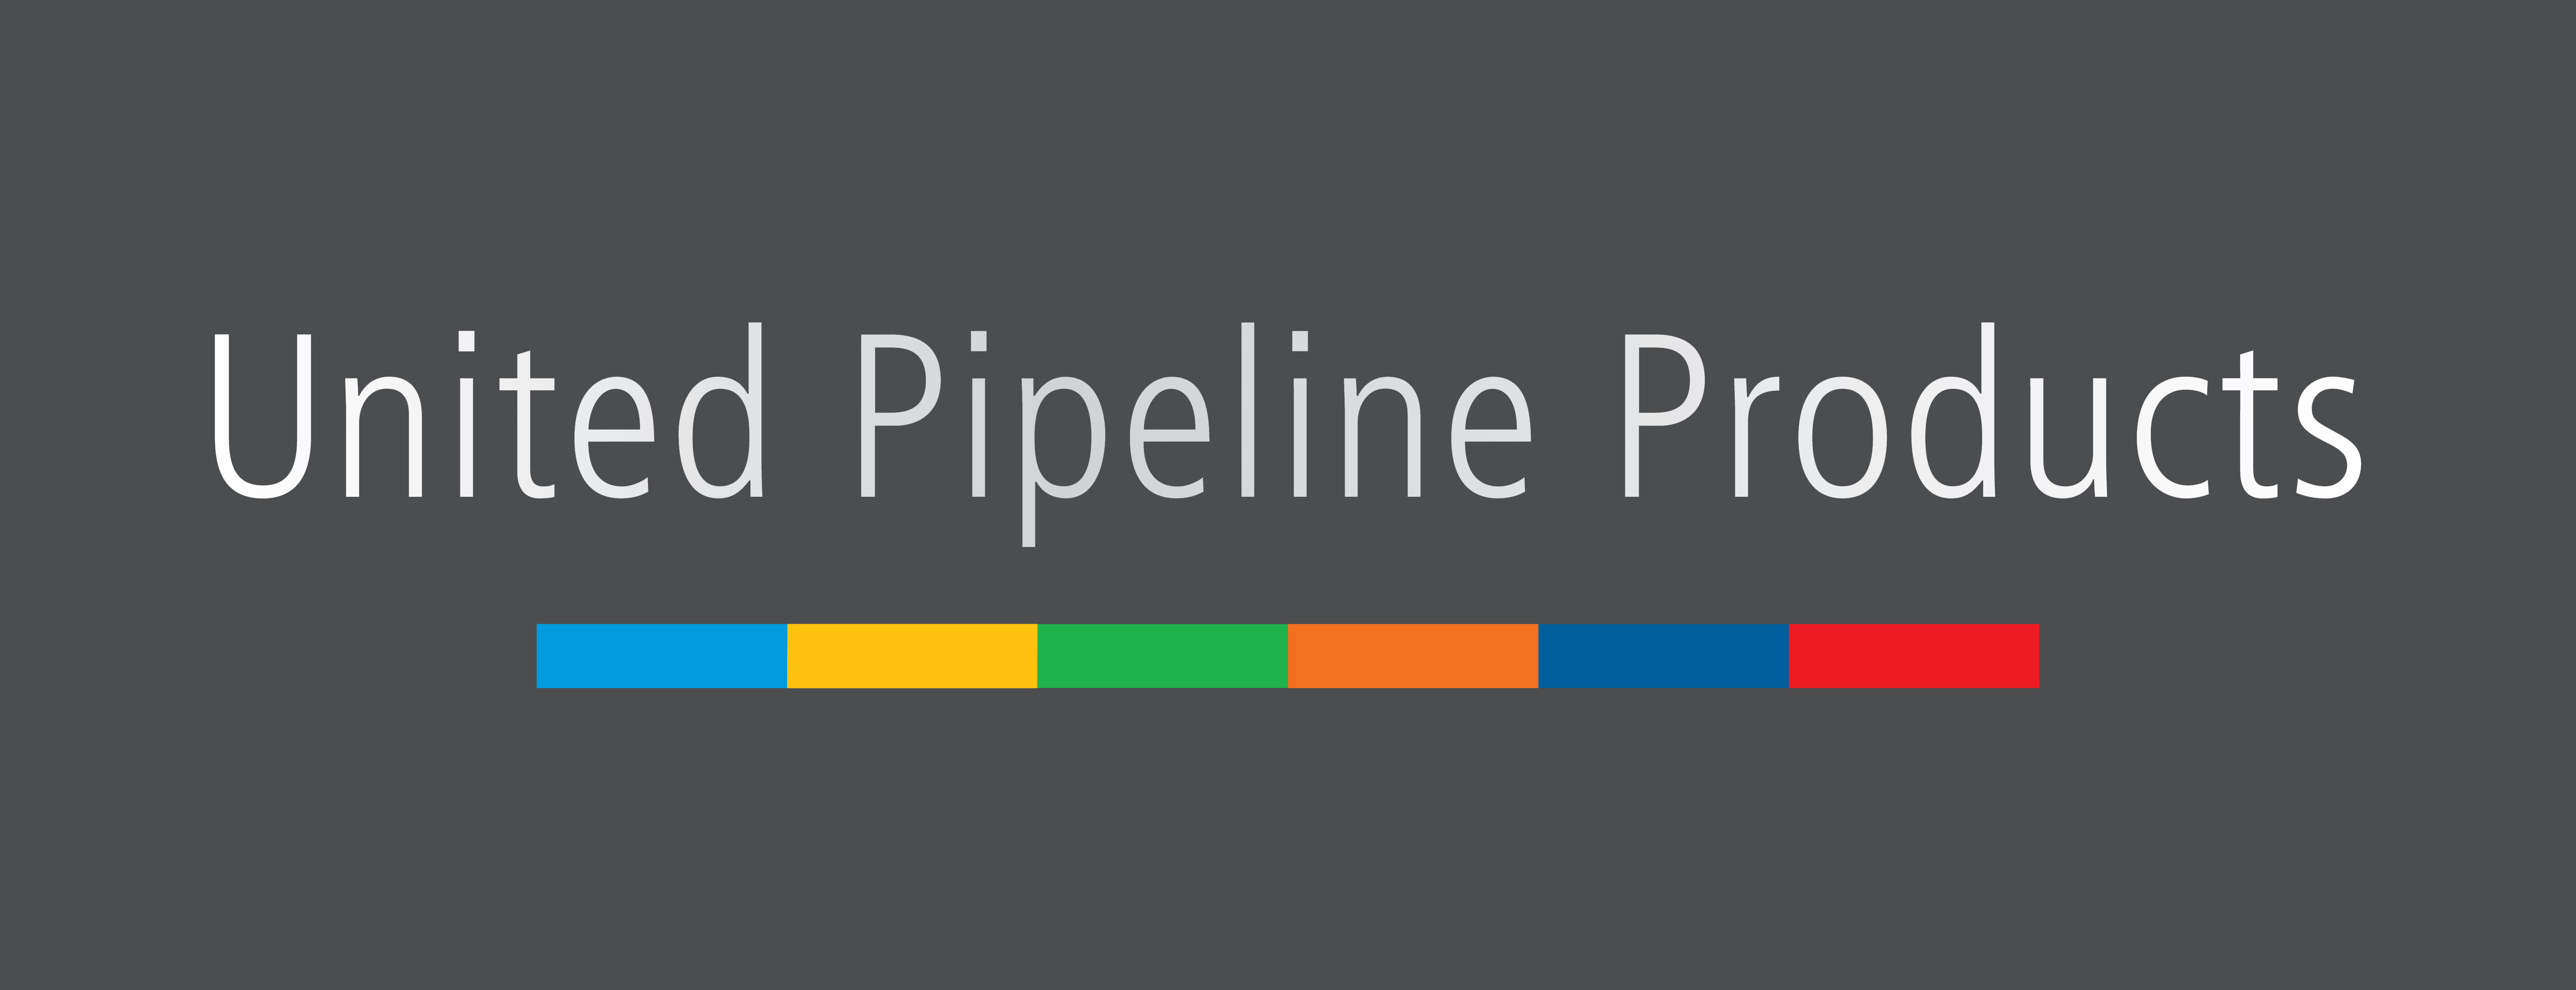 United Pipeline Products B.V.